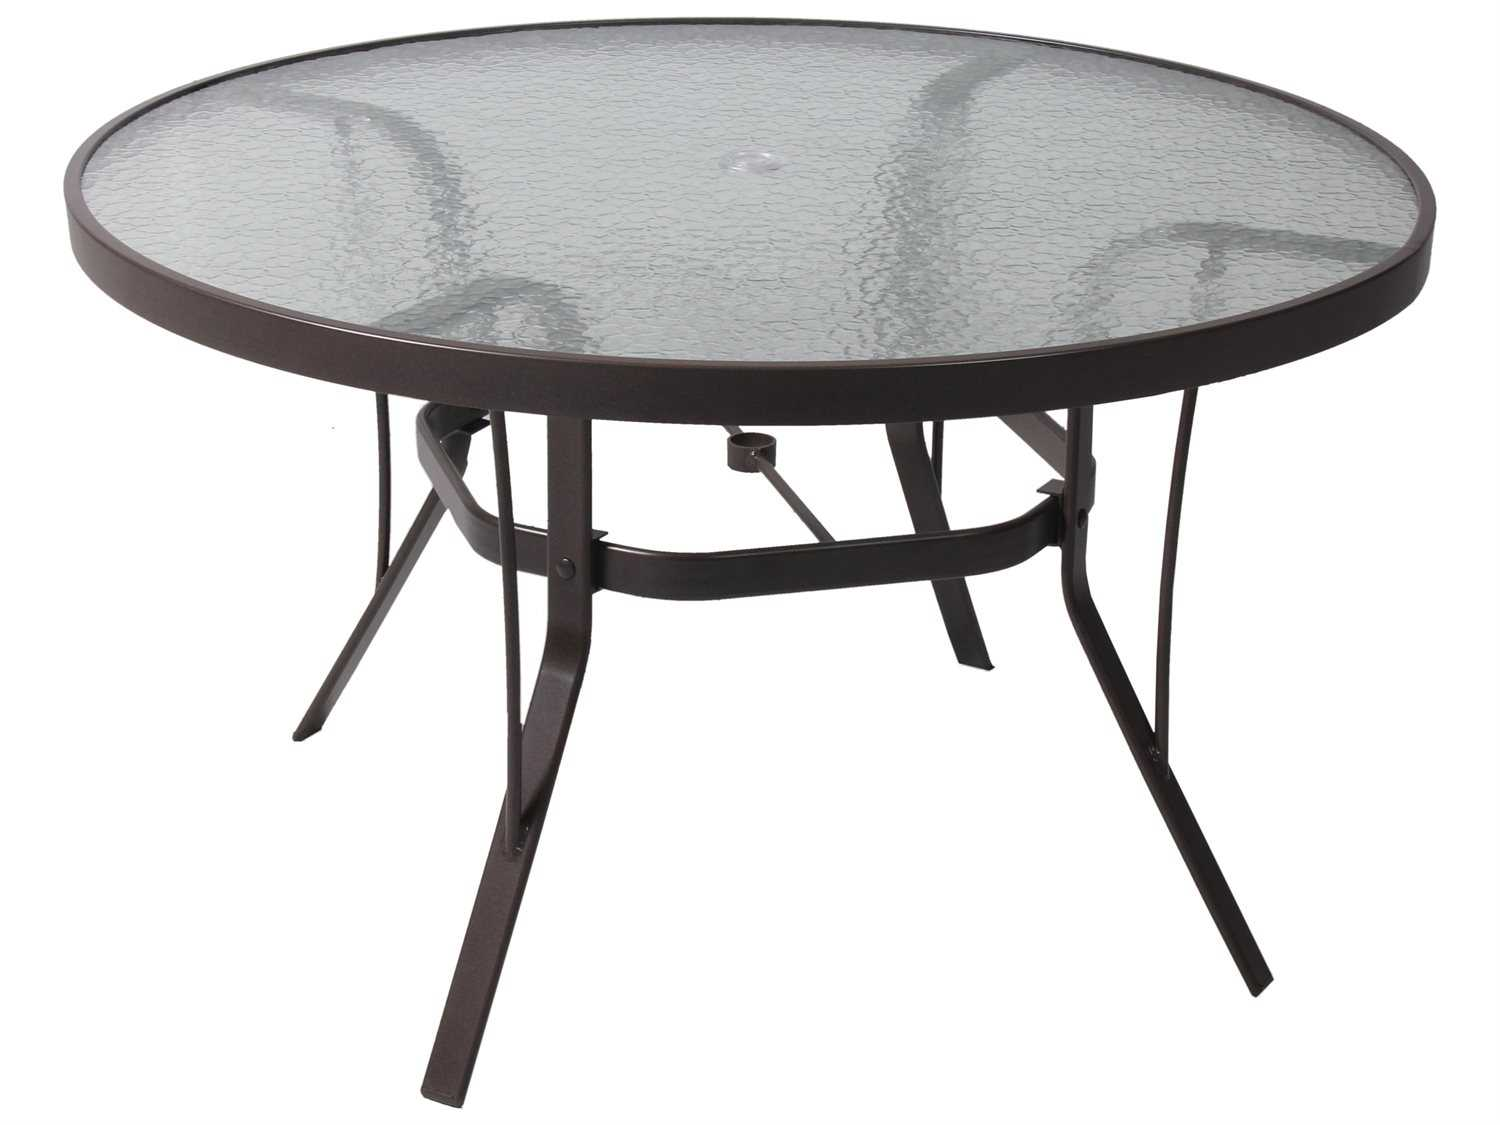 Suncoast cast aluminum 36 39 39 round glass top dining table Round glass table top